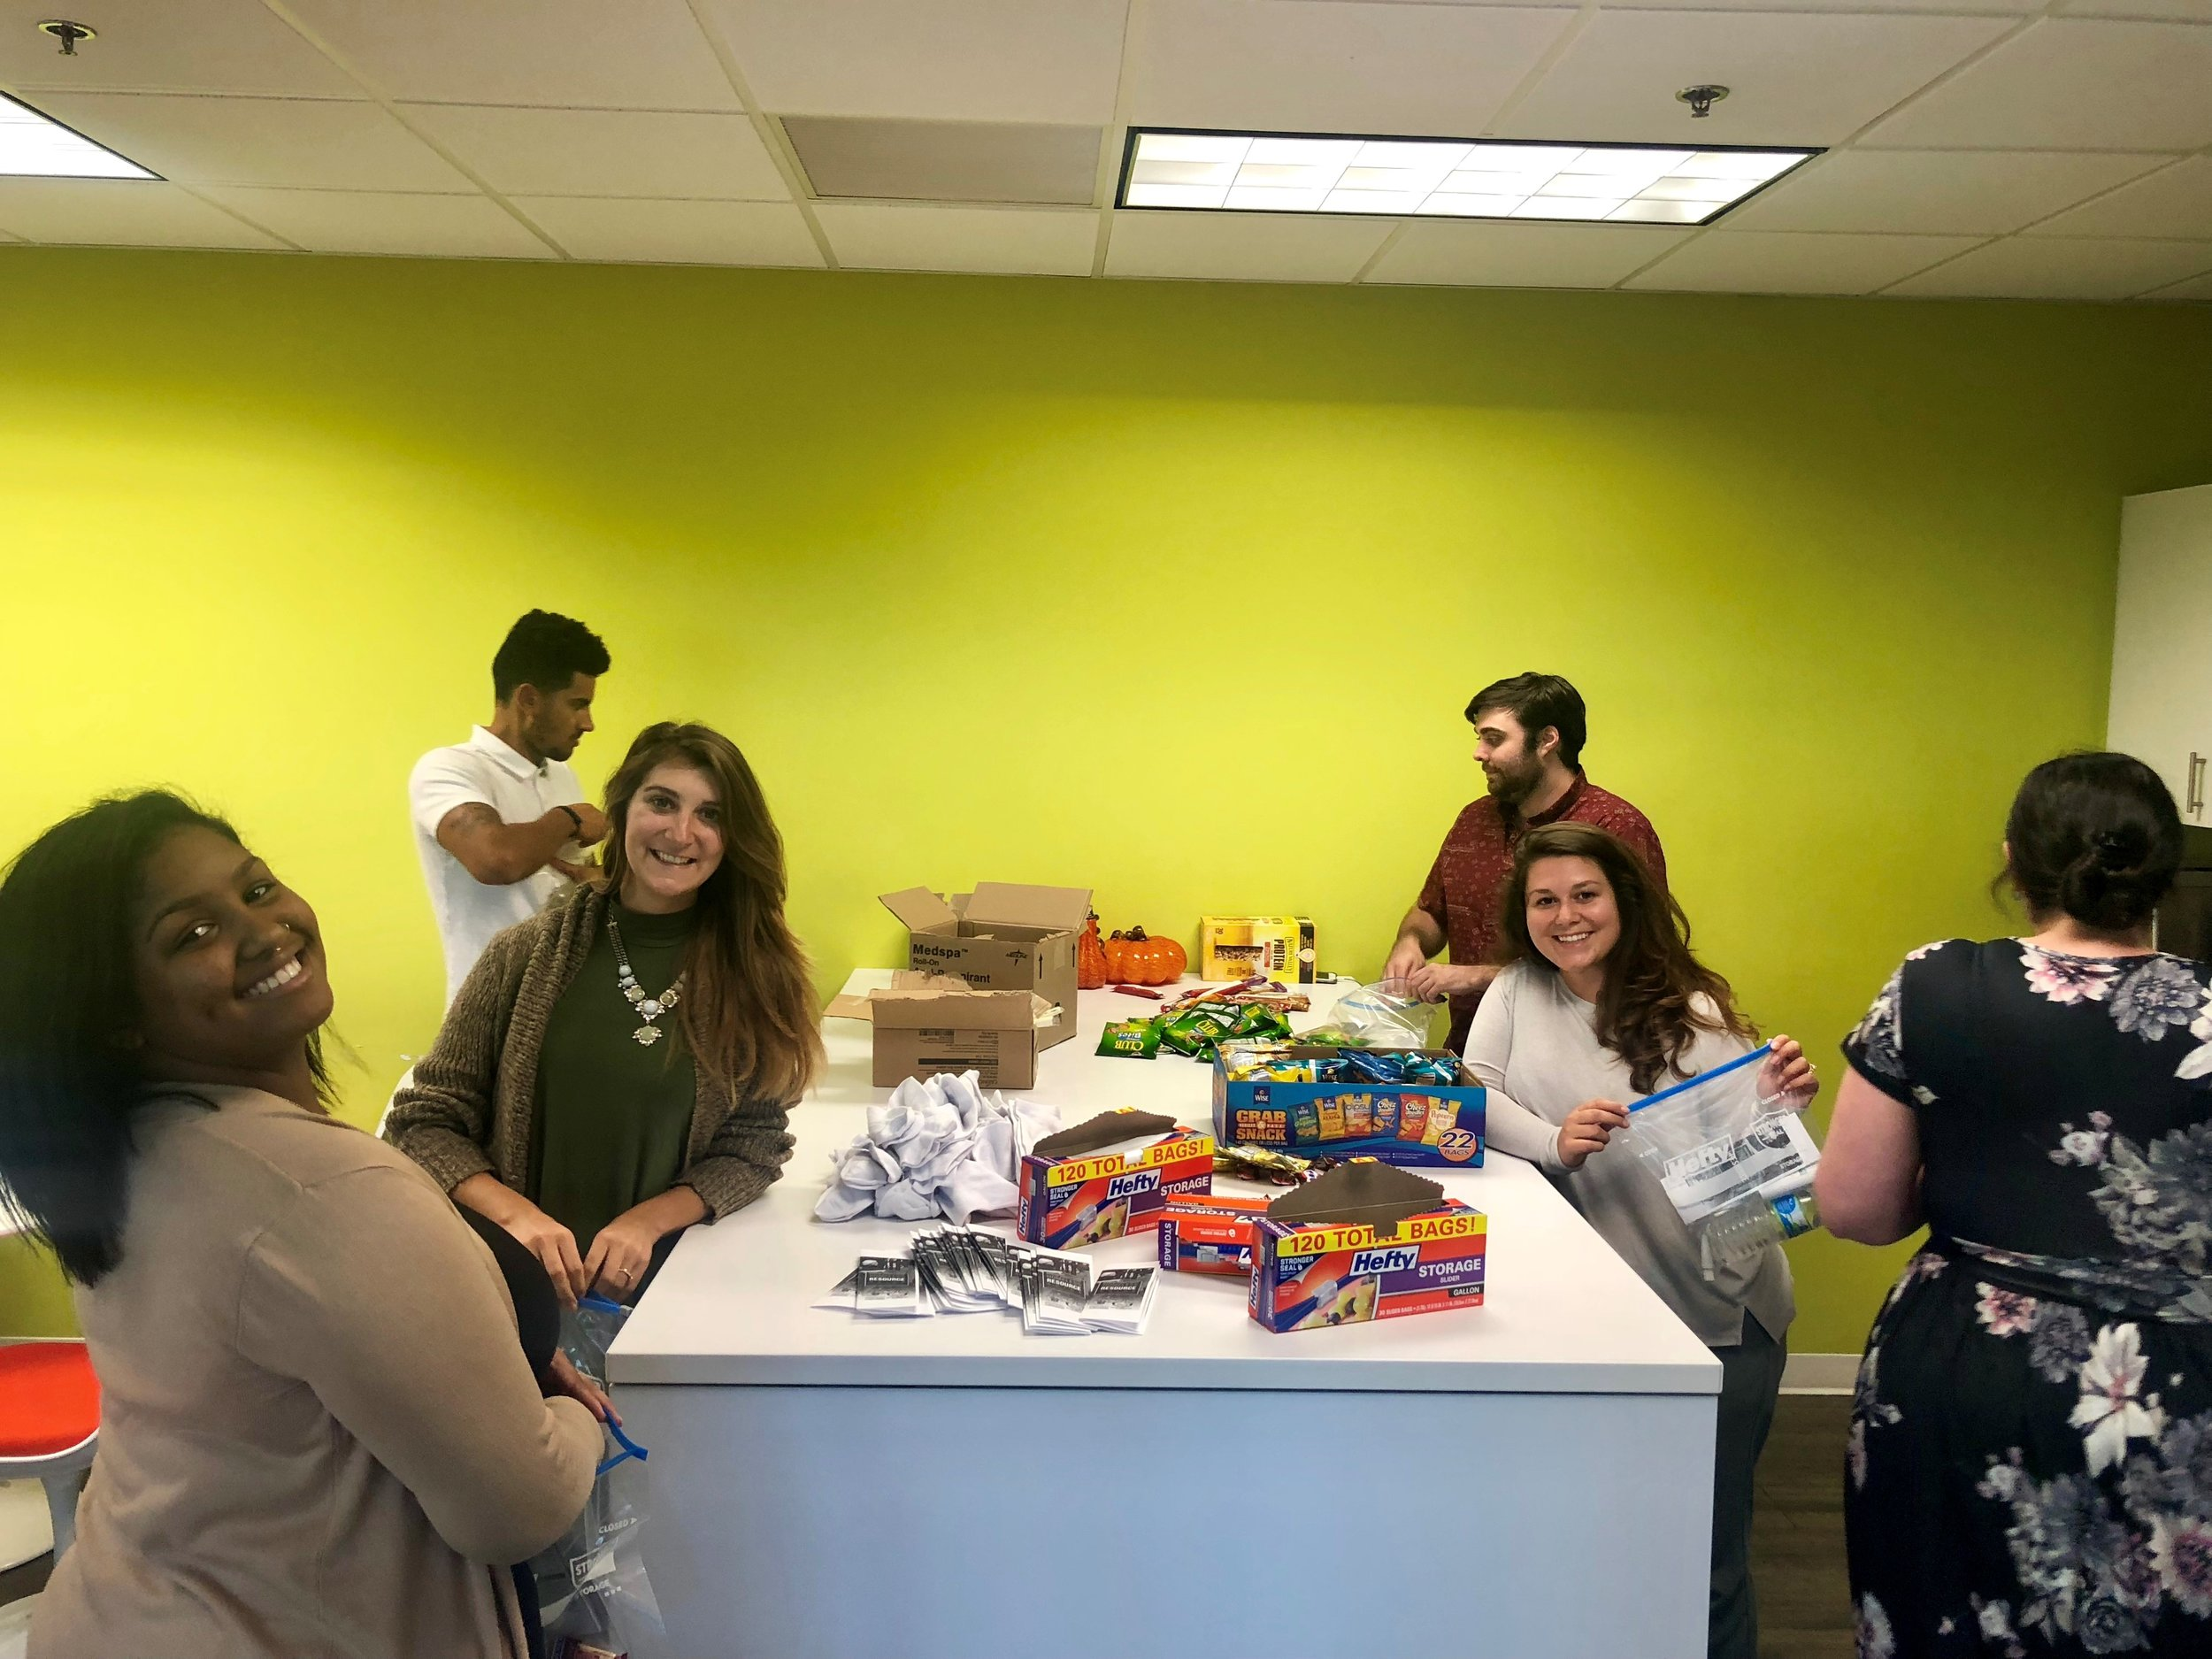 A few of our wonderful team members, Julien, Katey, Raquel, Ty, Caci, and Ariel worked together to assemble Love Bags for our community! Awesome job, Platinum Family!